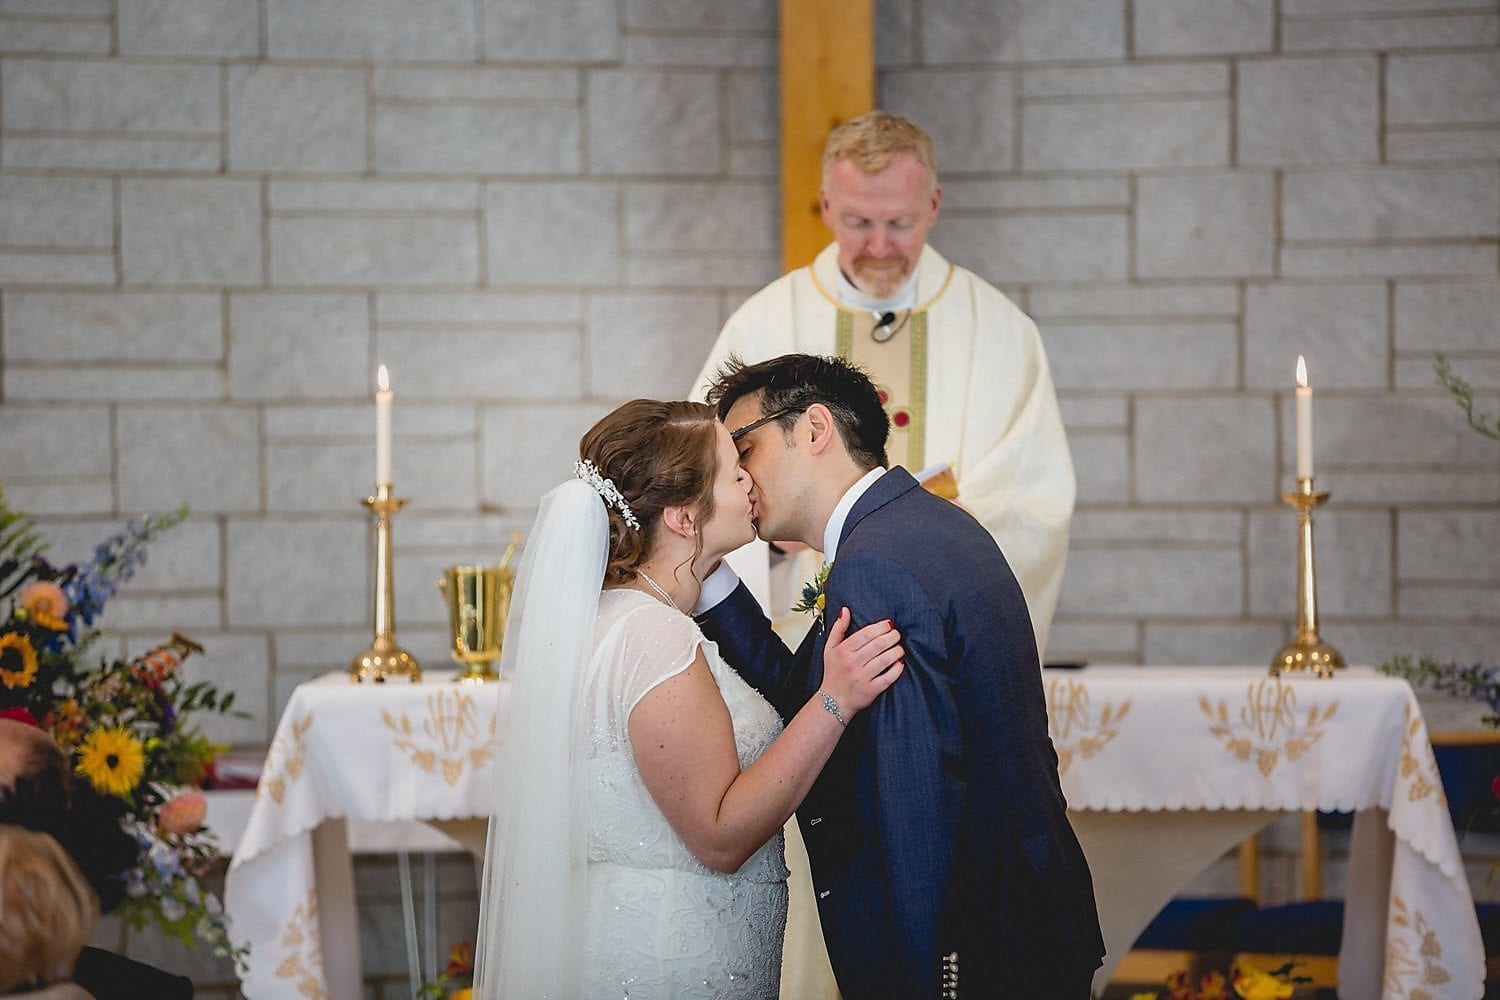 The newlyweds share their first kiss as husband and wife